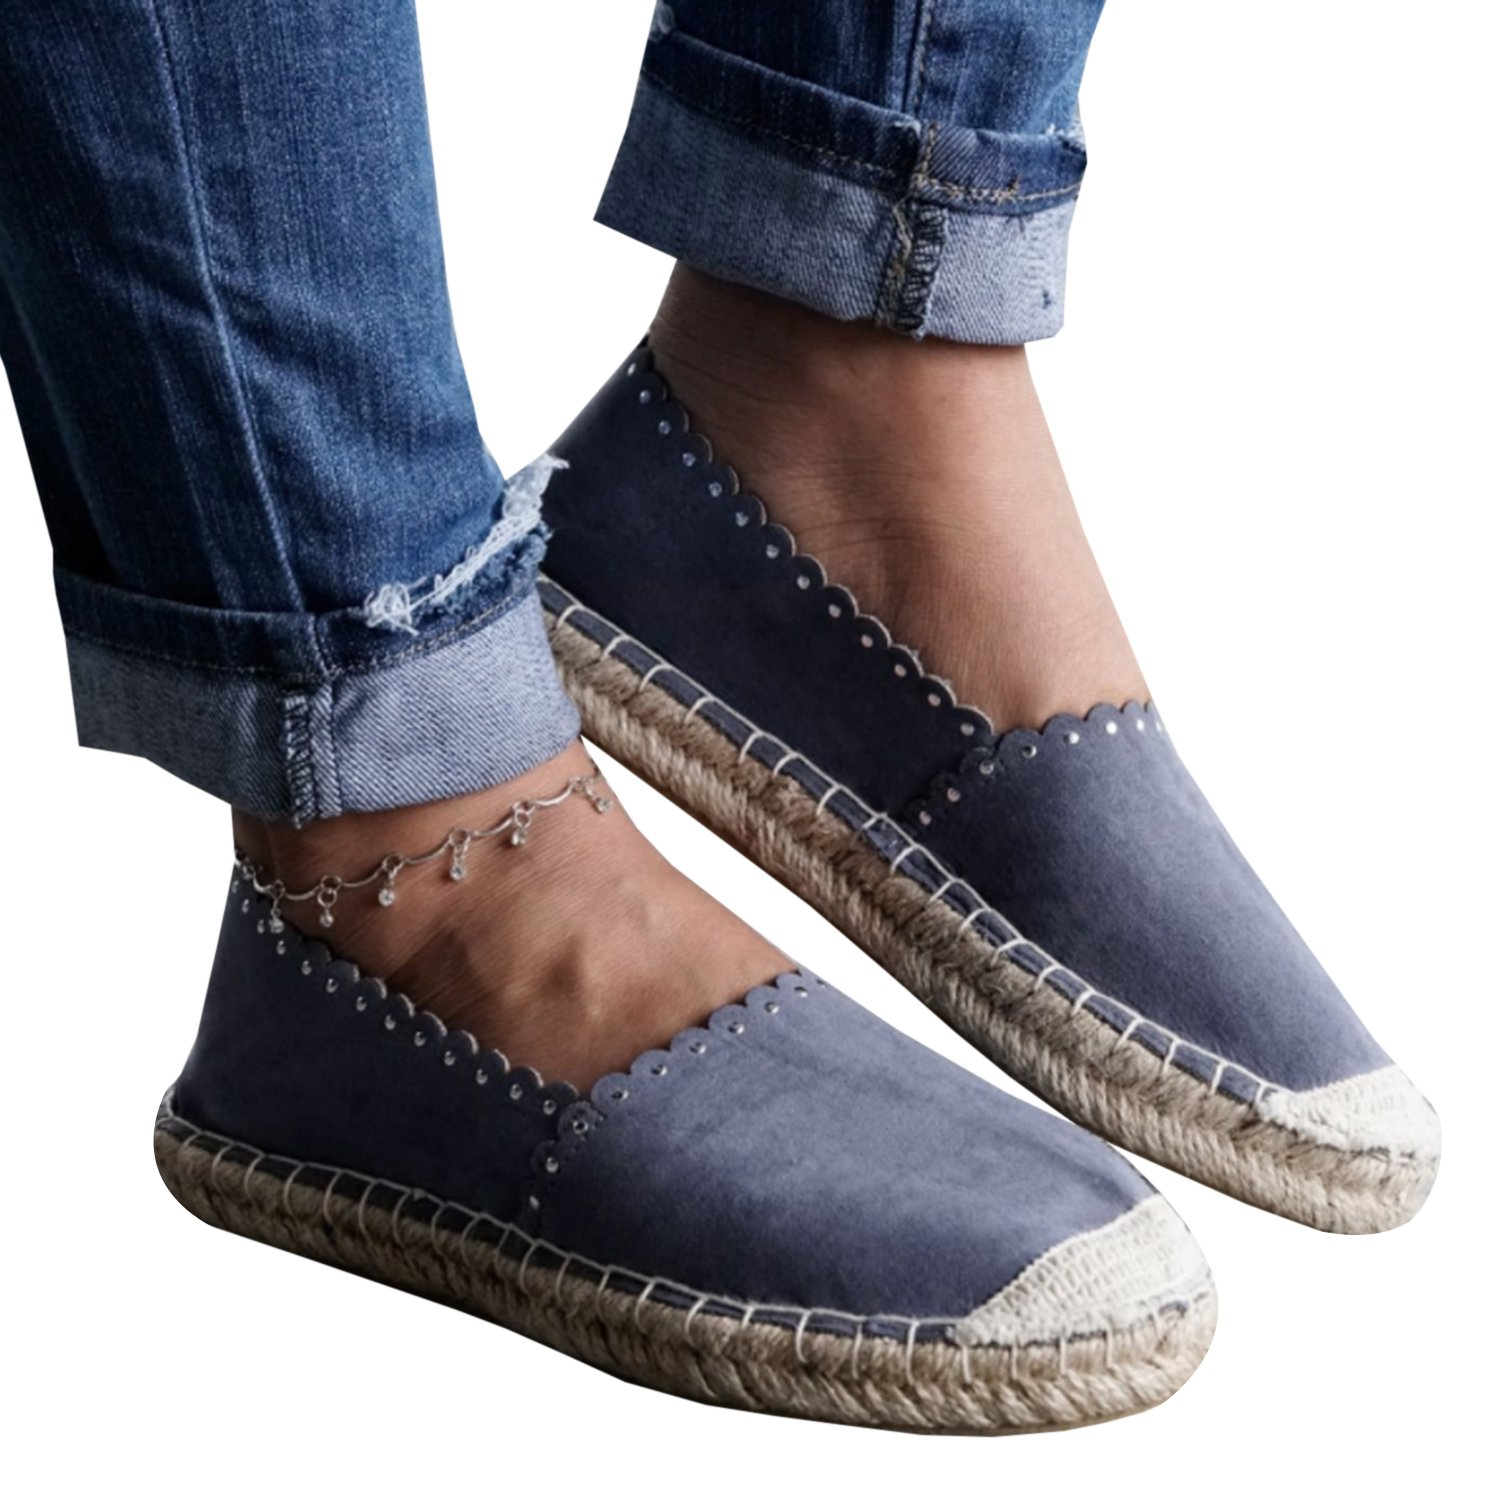 Women's sneaker casual fashion Canvas Shoes loafer slip-on Espadrille flat lace cut out summer shoes by LAICIGO (Image #2)